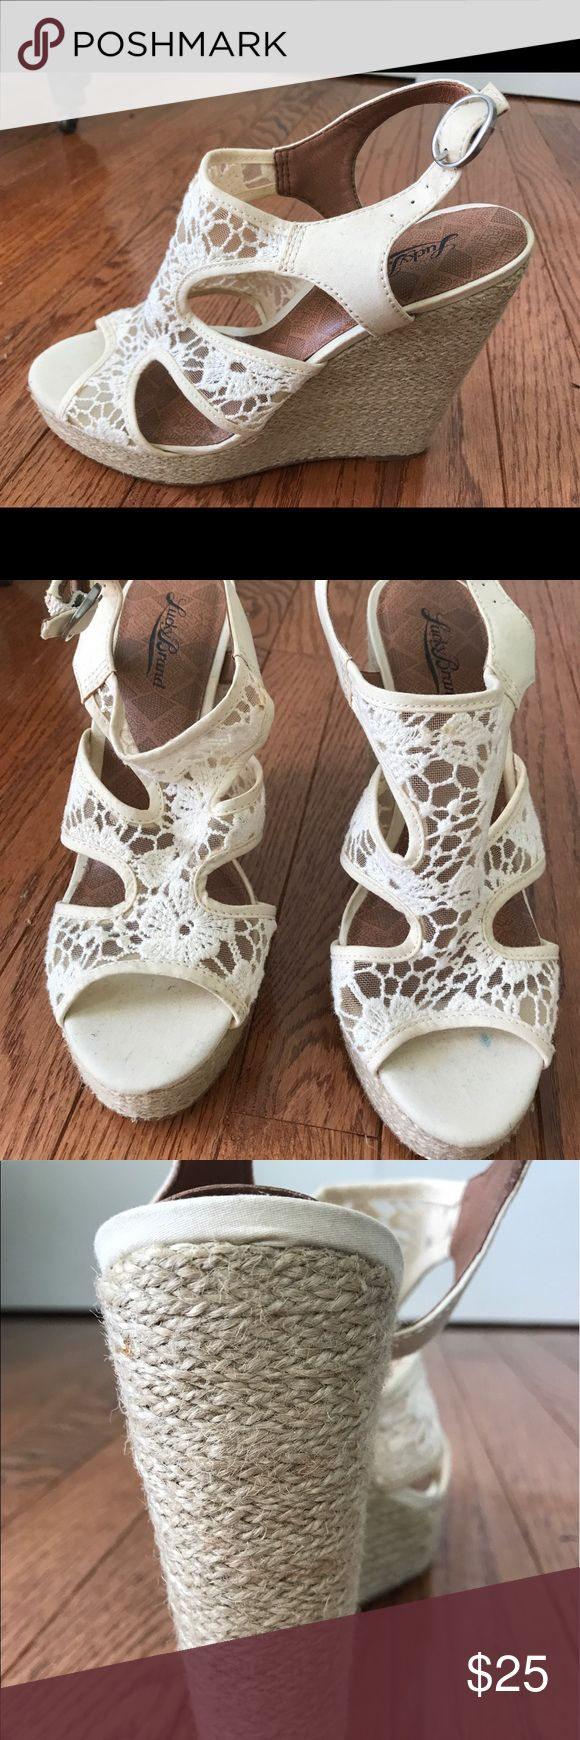 Lucky Brand Wedges Never worn. Lacey pattern. Cream color. Lucky Brand Shoes Wedges